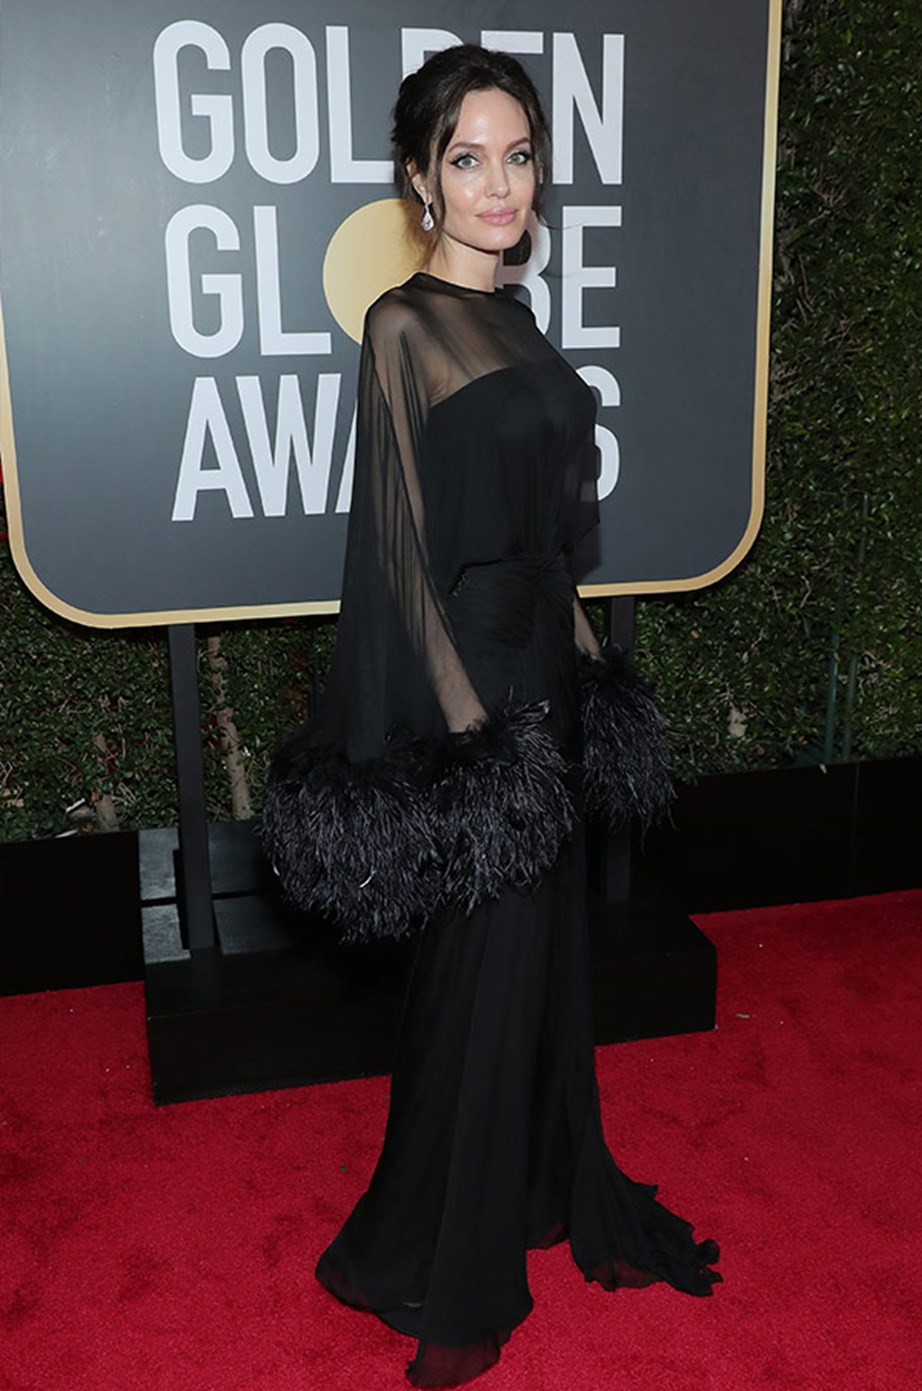 Angelia Jolie is a total vision in this long-sleeved, sheer dress.